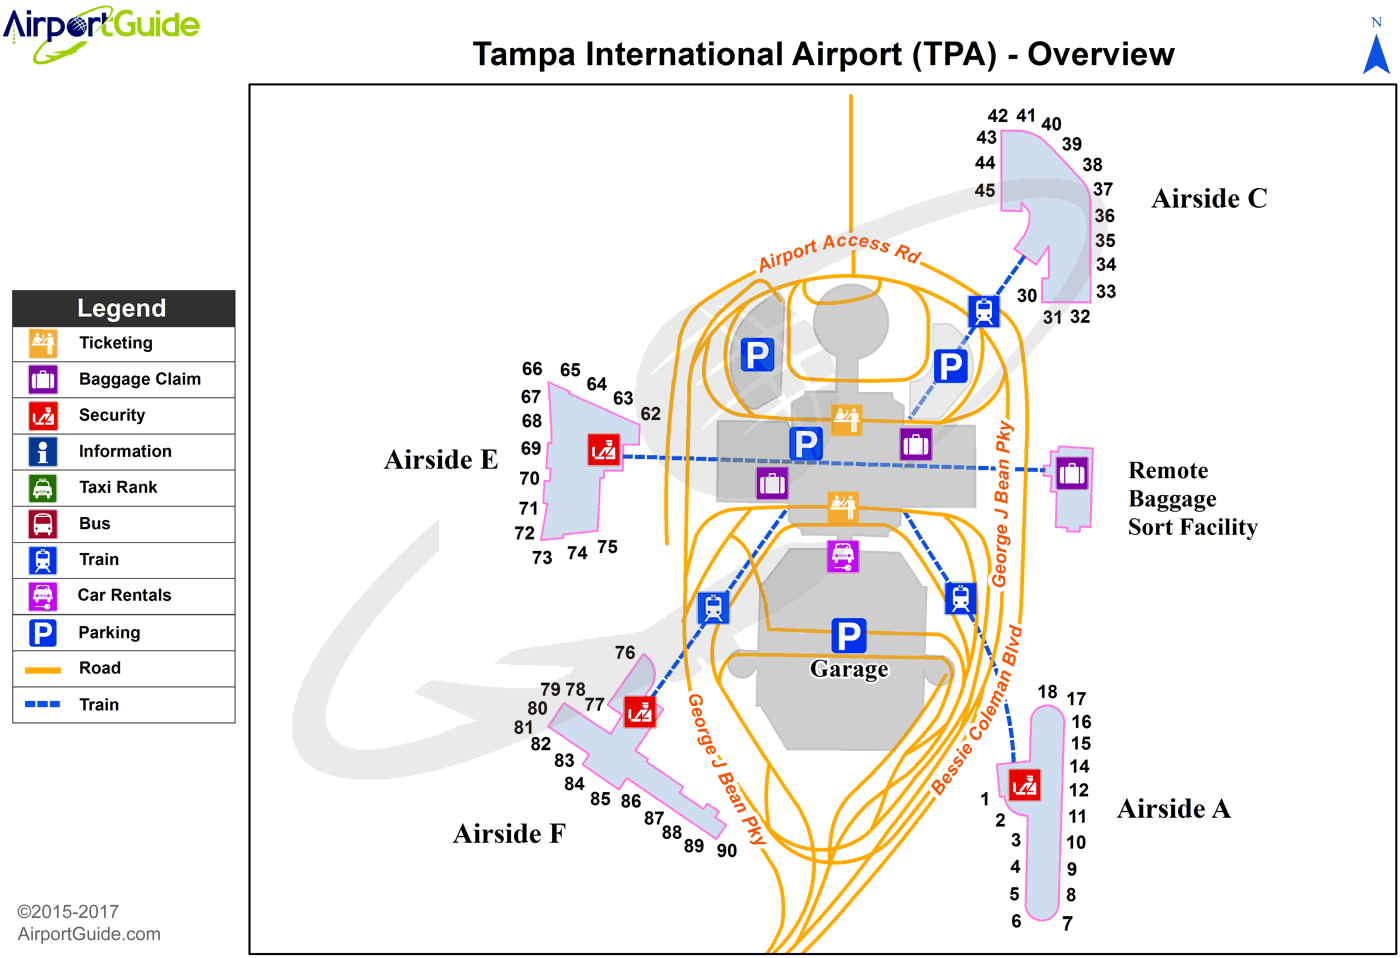 Tampa - Tampa International (TPA) Airport Terminal Map - Overview